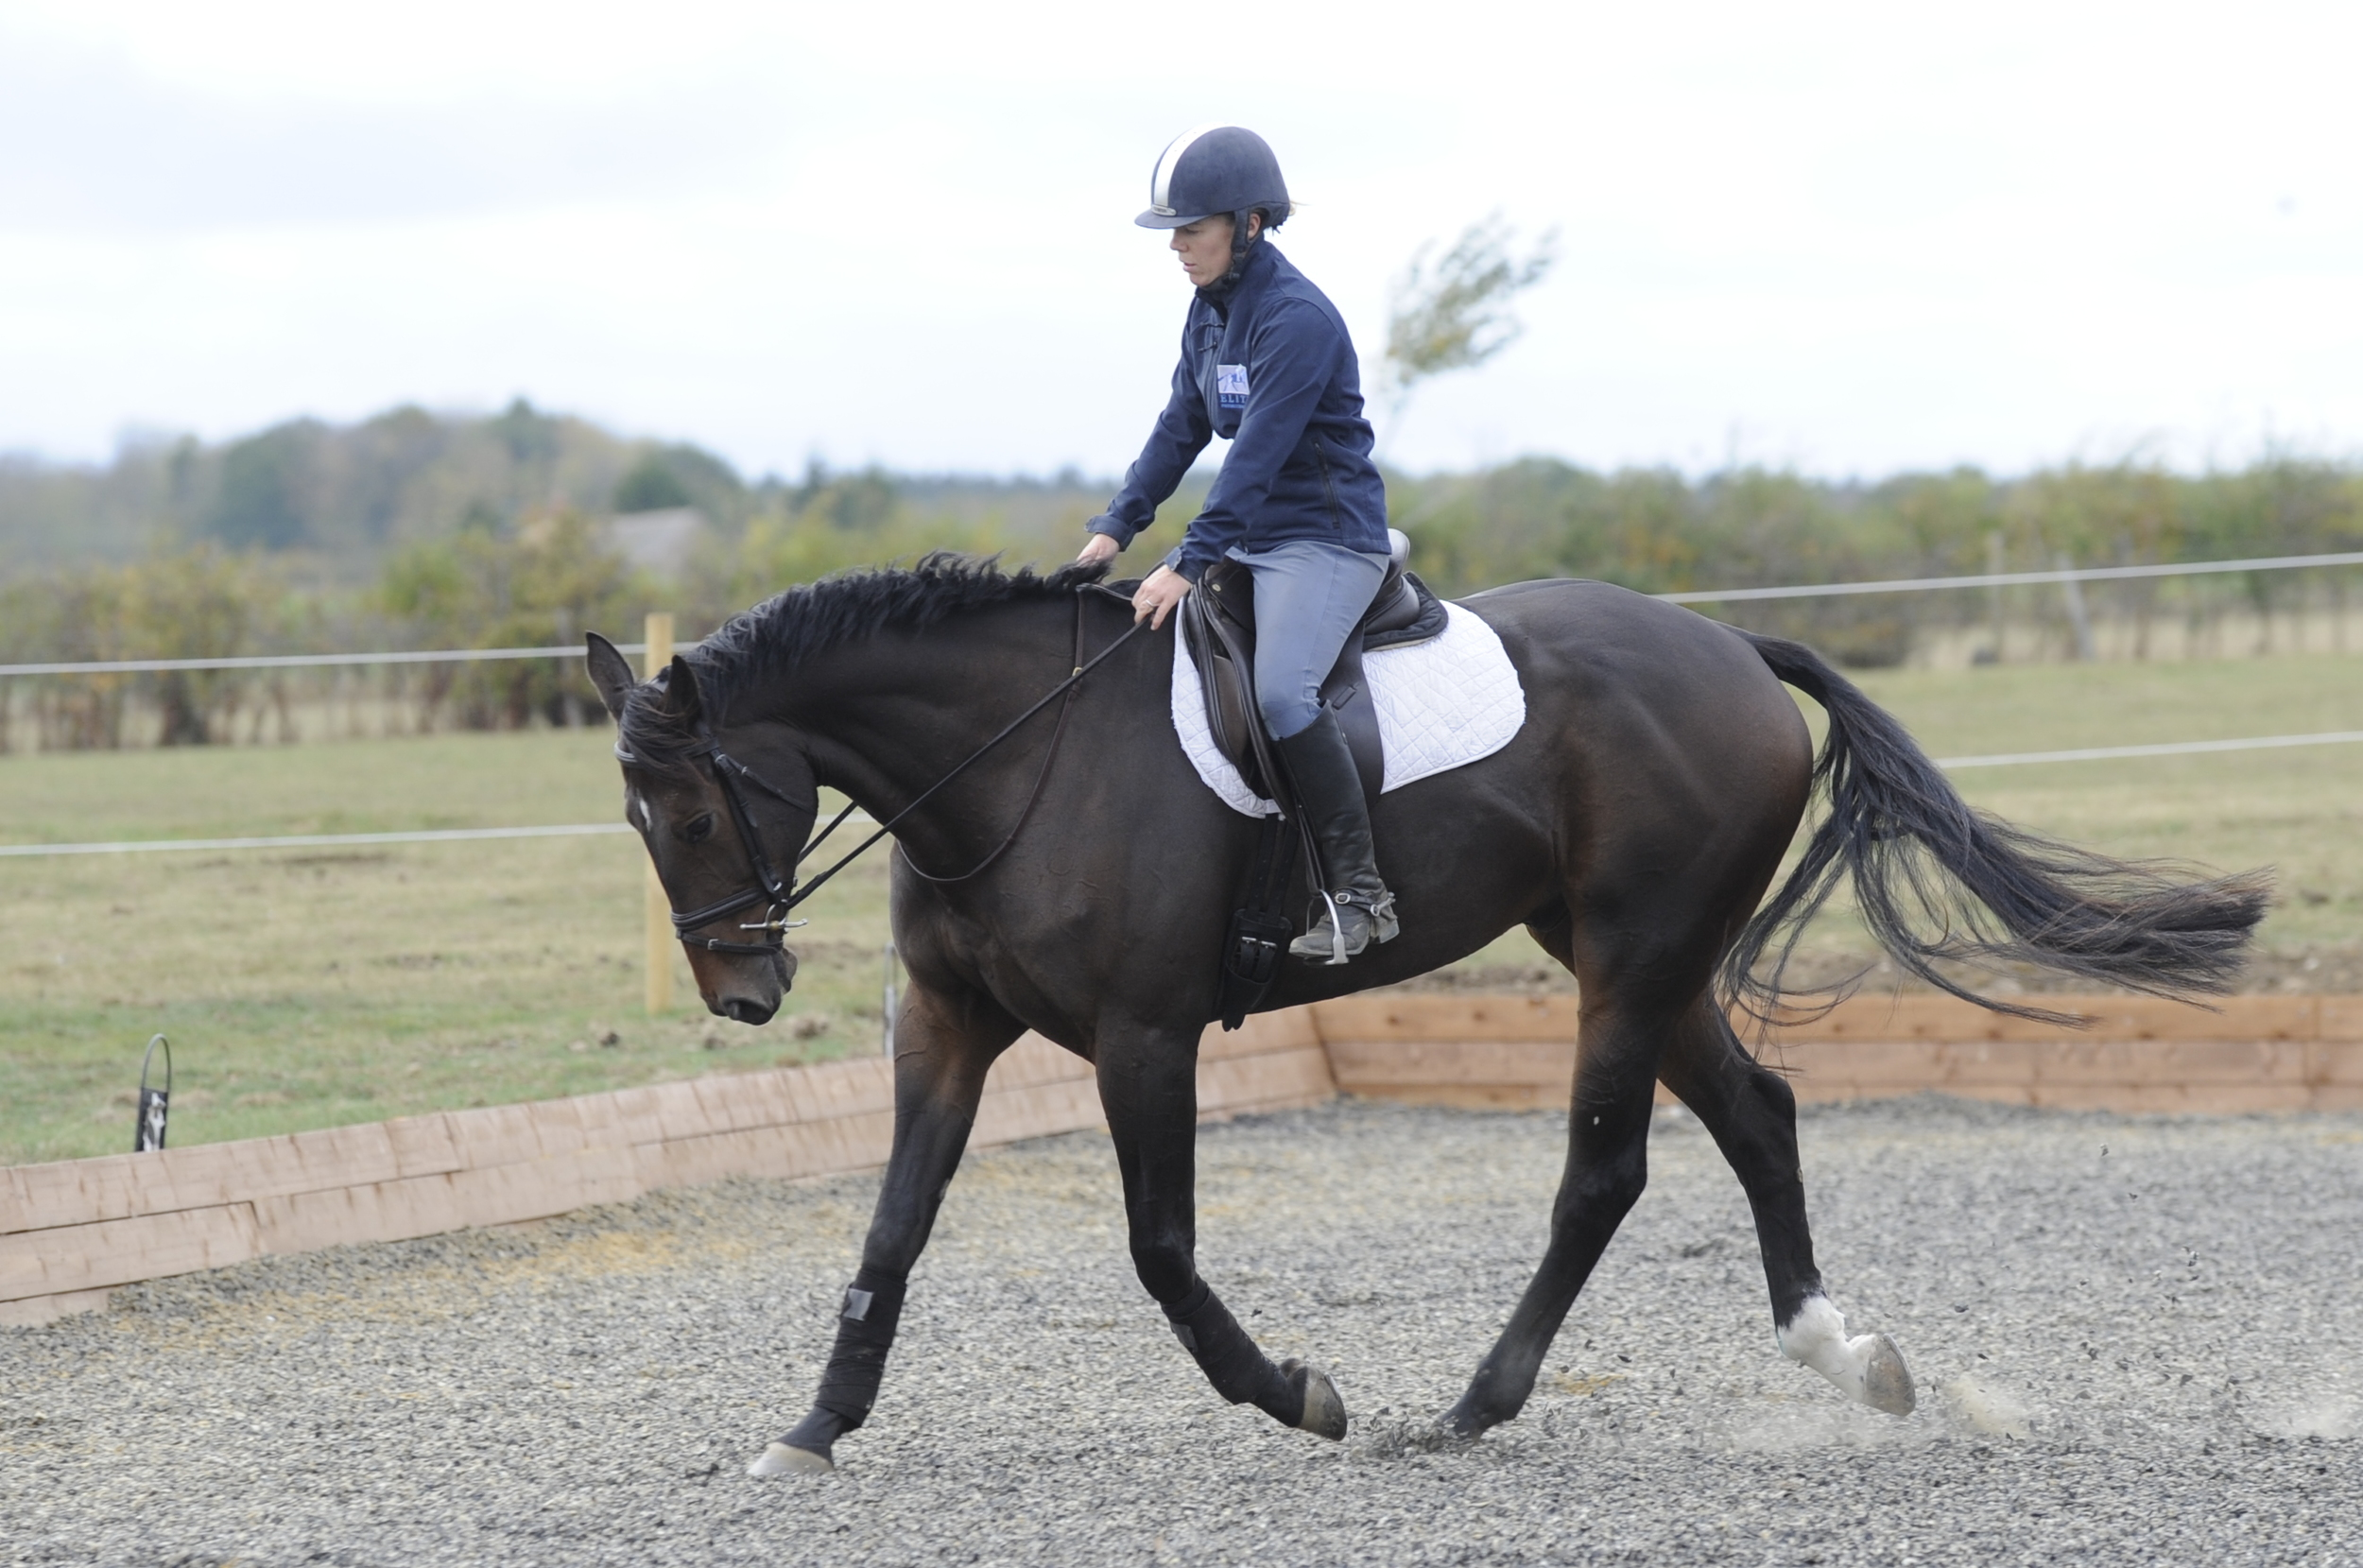 Allowing your horse to open his frame will stretch the muscles along his neck and back